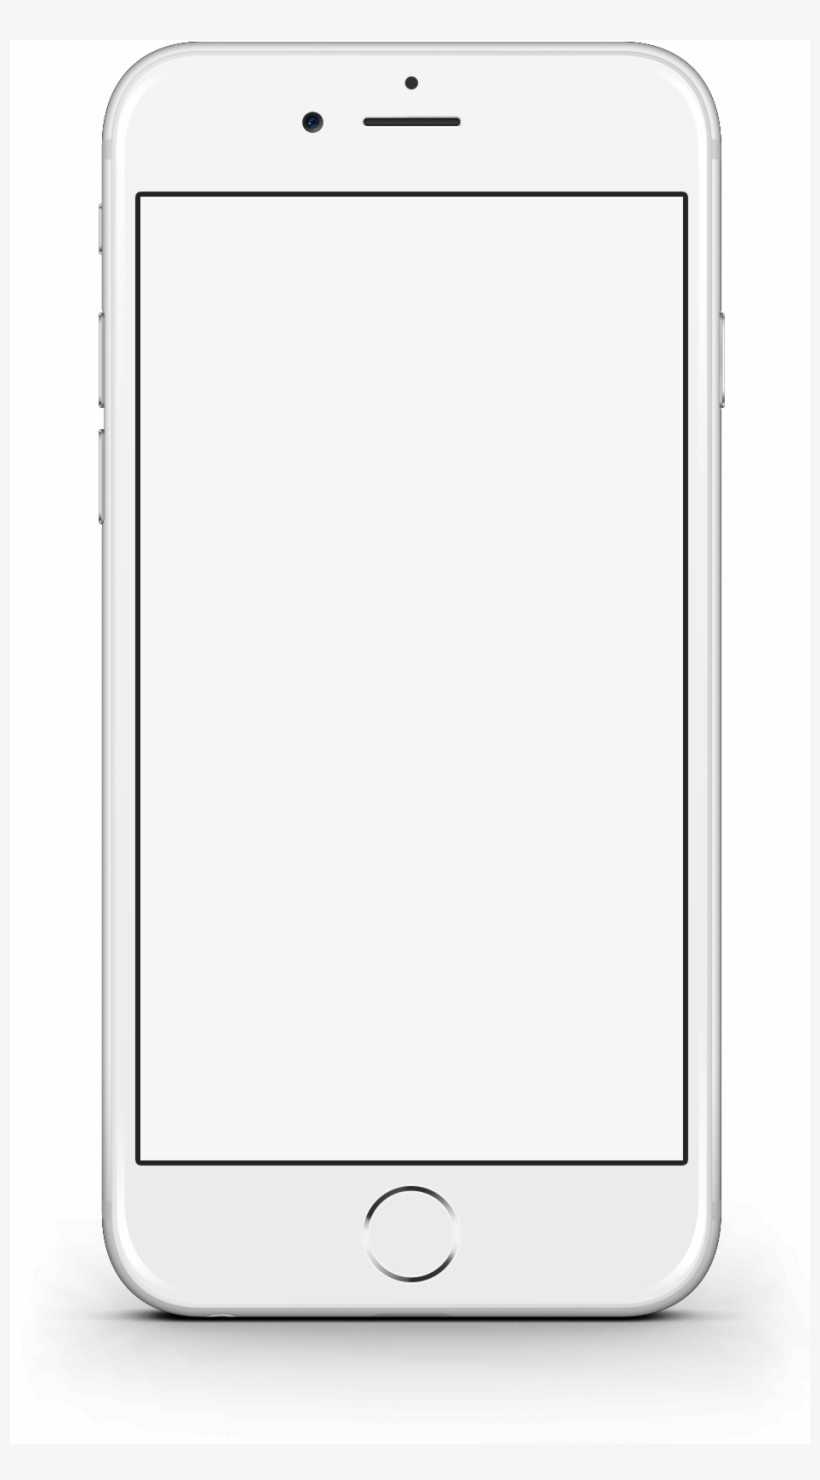 Phone Background Images Iphone 6 Template Free